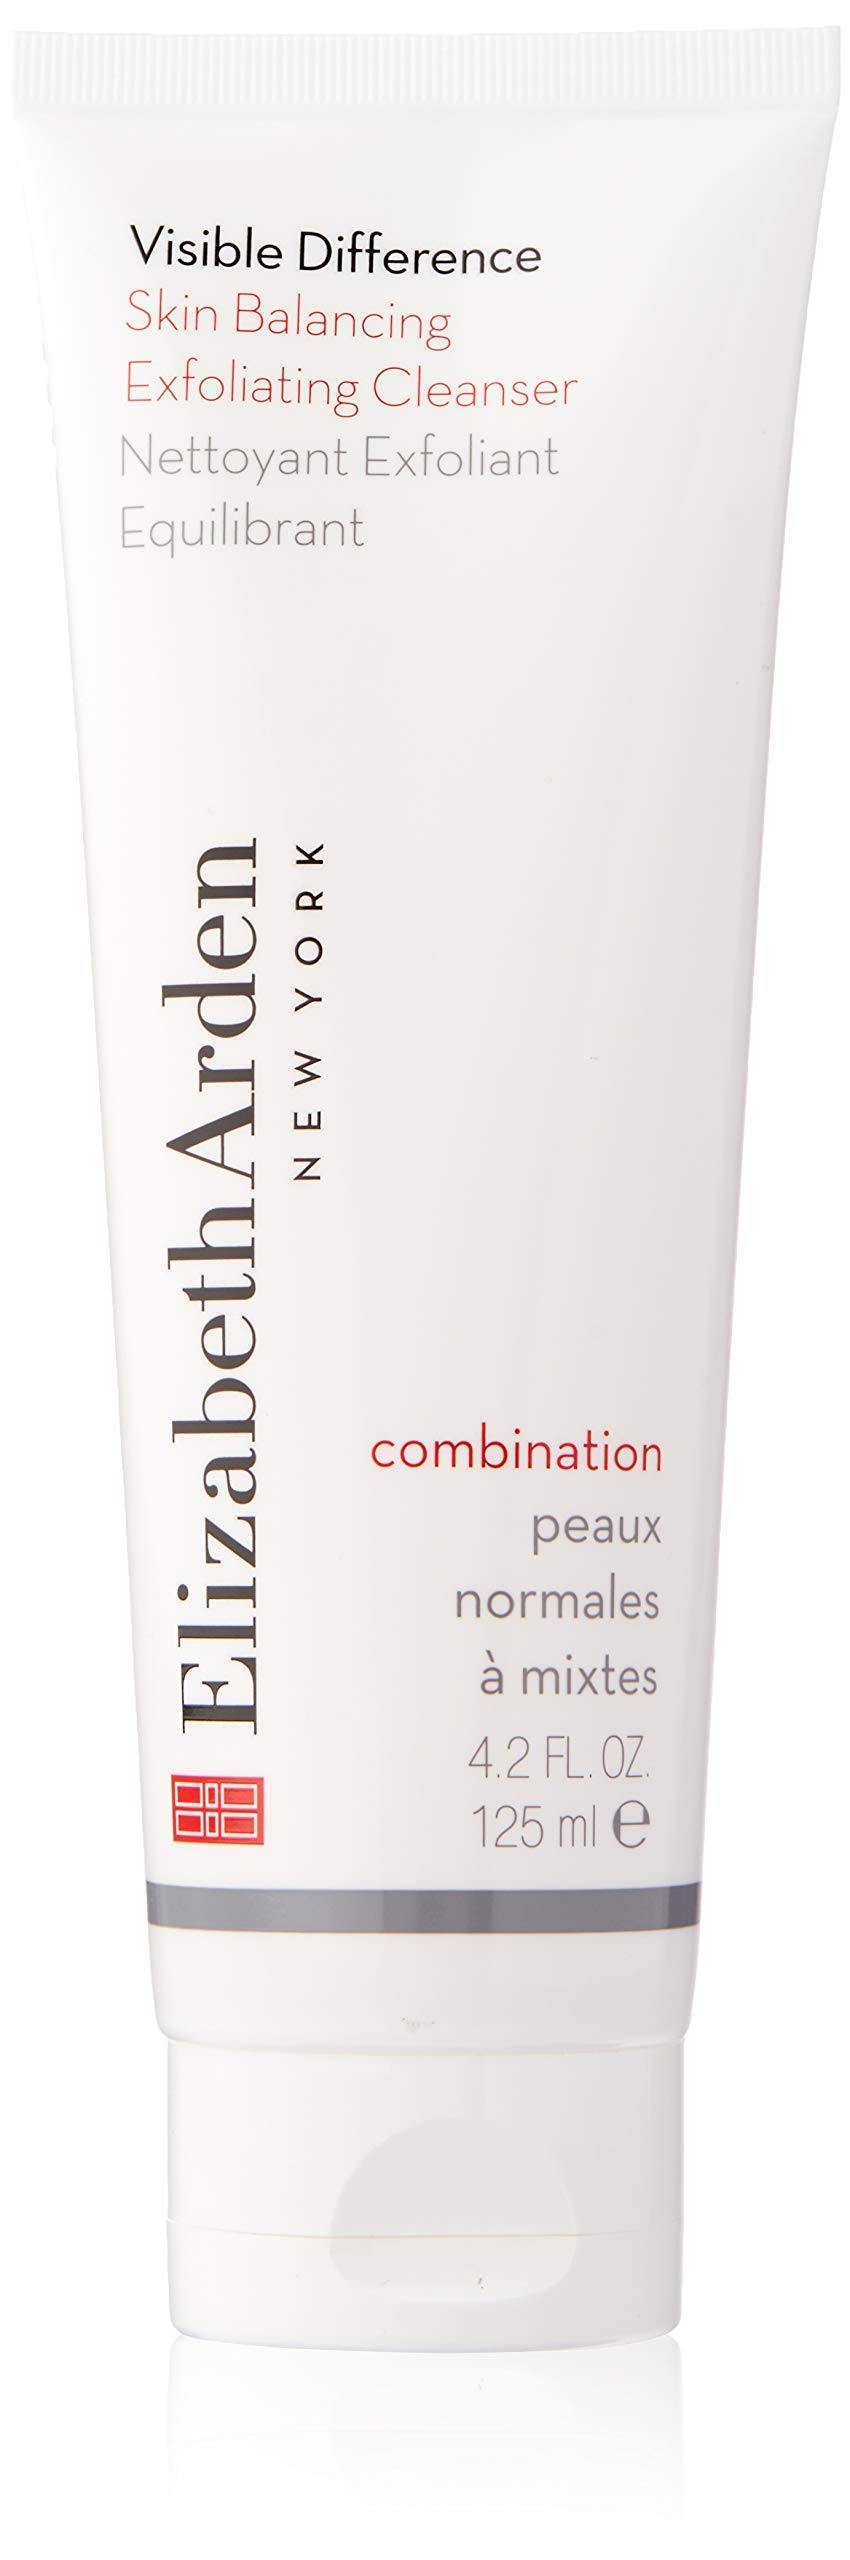 Elizabeth Arden Visible Difference Skin Balancing Exfoliating Cleanser, 125ml